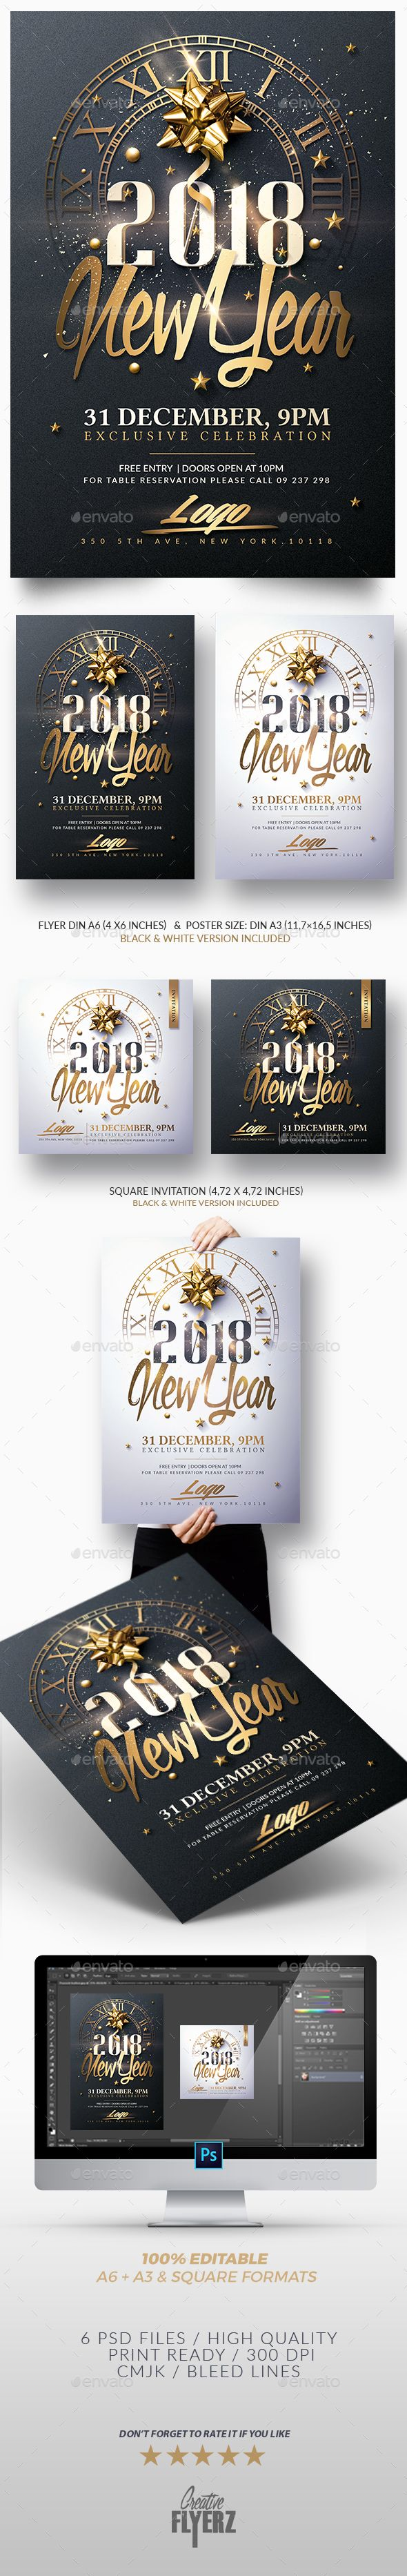 #New Year Invitation - Psd #Package - Print Templates